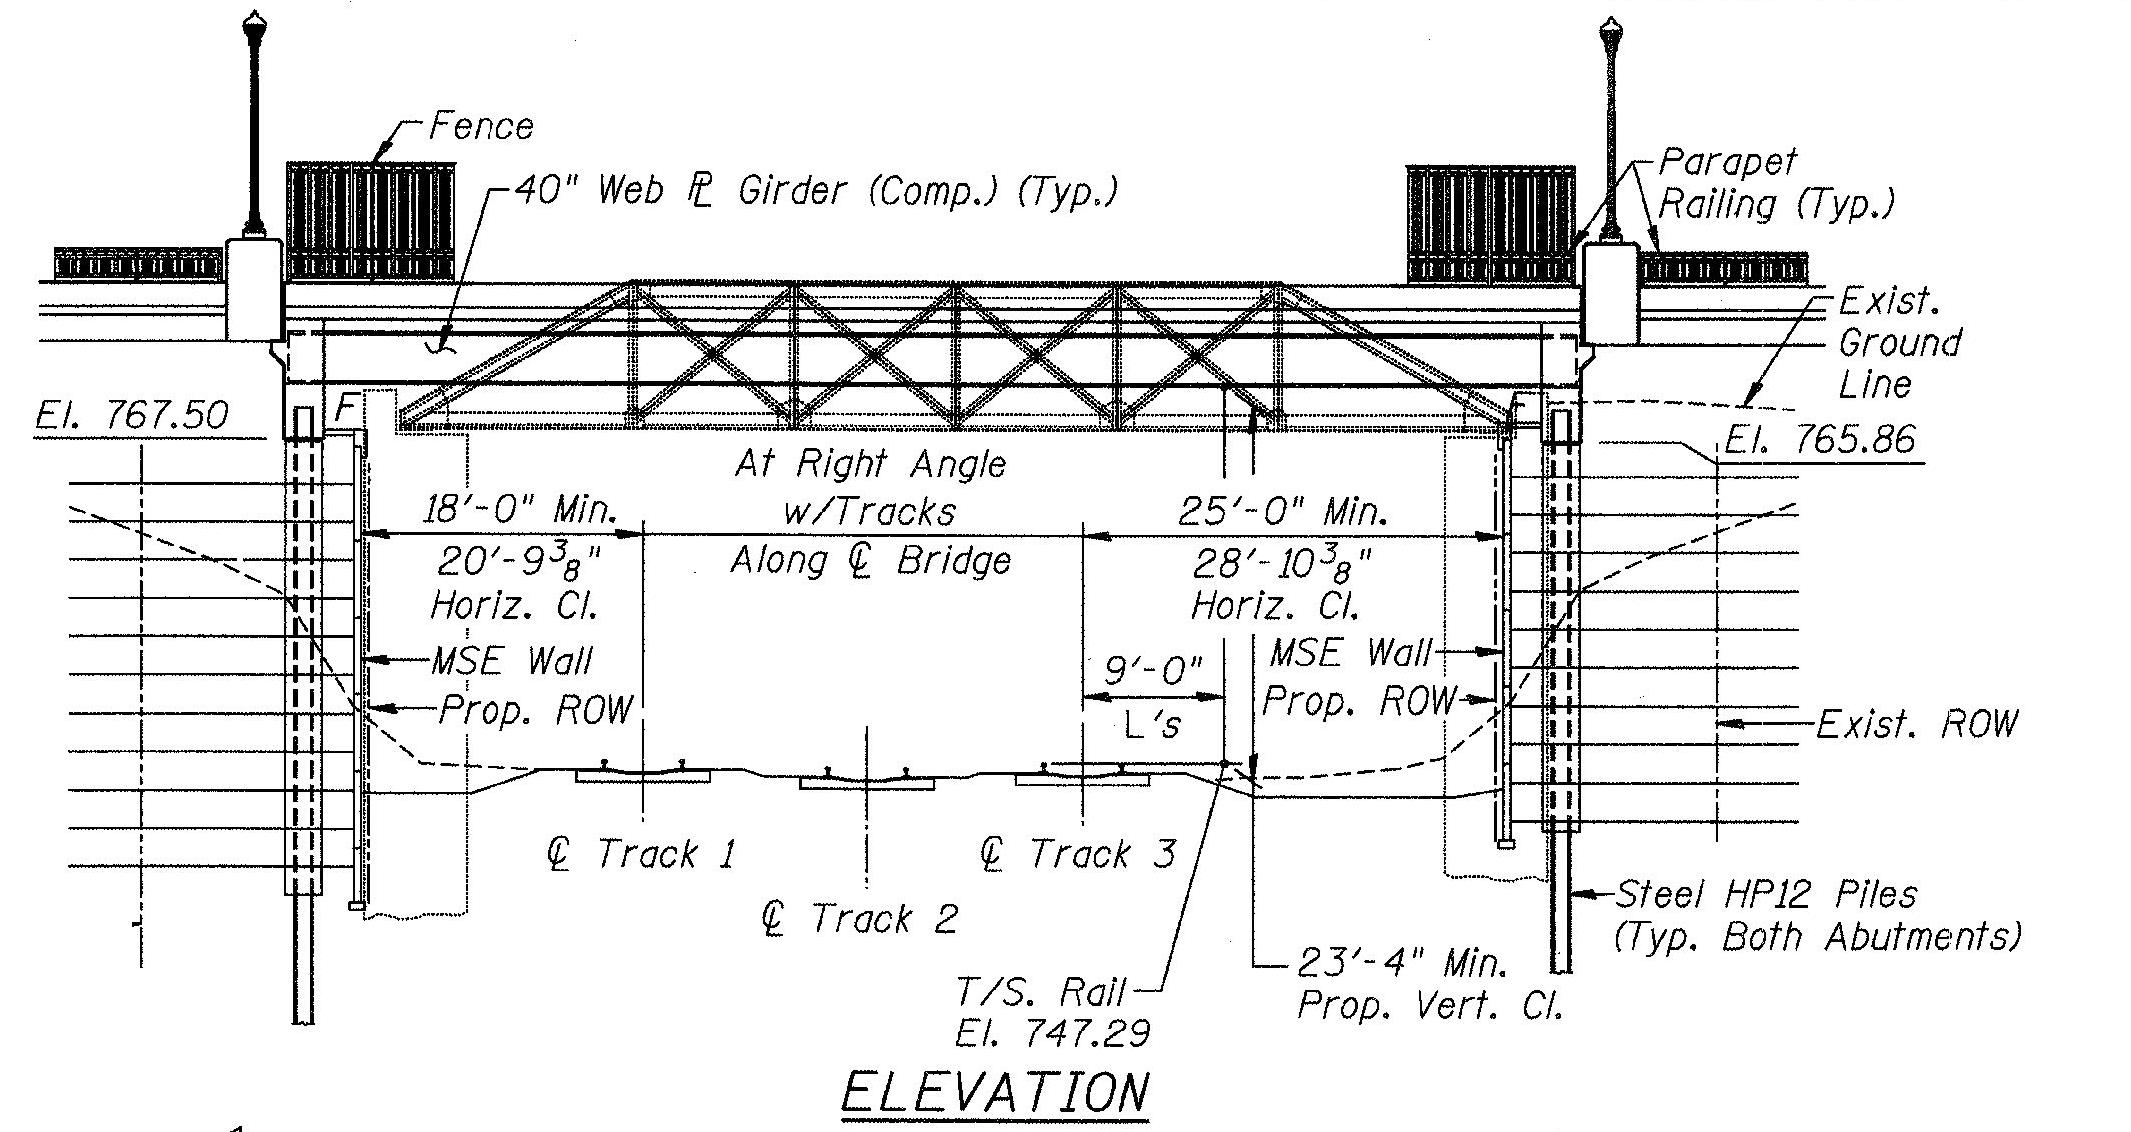 Volunteer Bridge Truss Diagram Track Pony By Of The Project Is In Fact Nothing Short A Devastating And Needless Loss An Important Historic To Repair